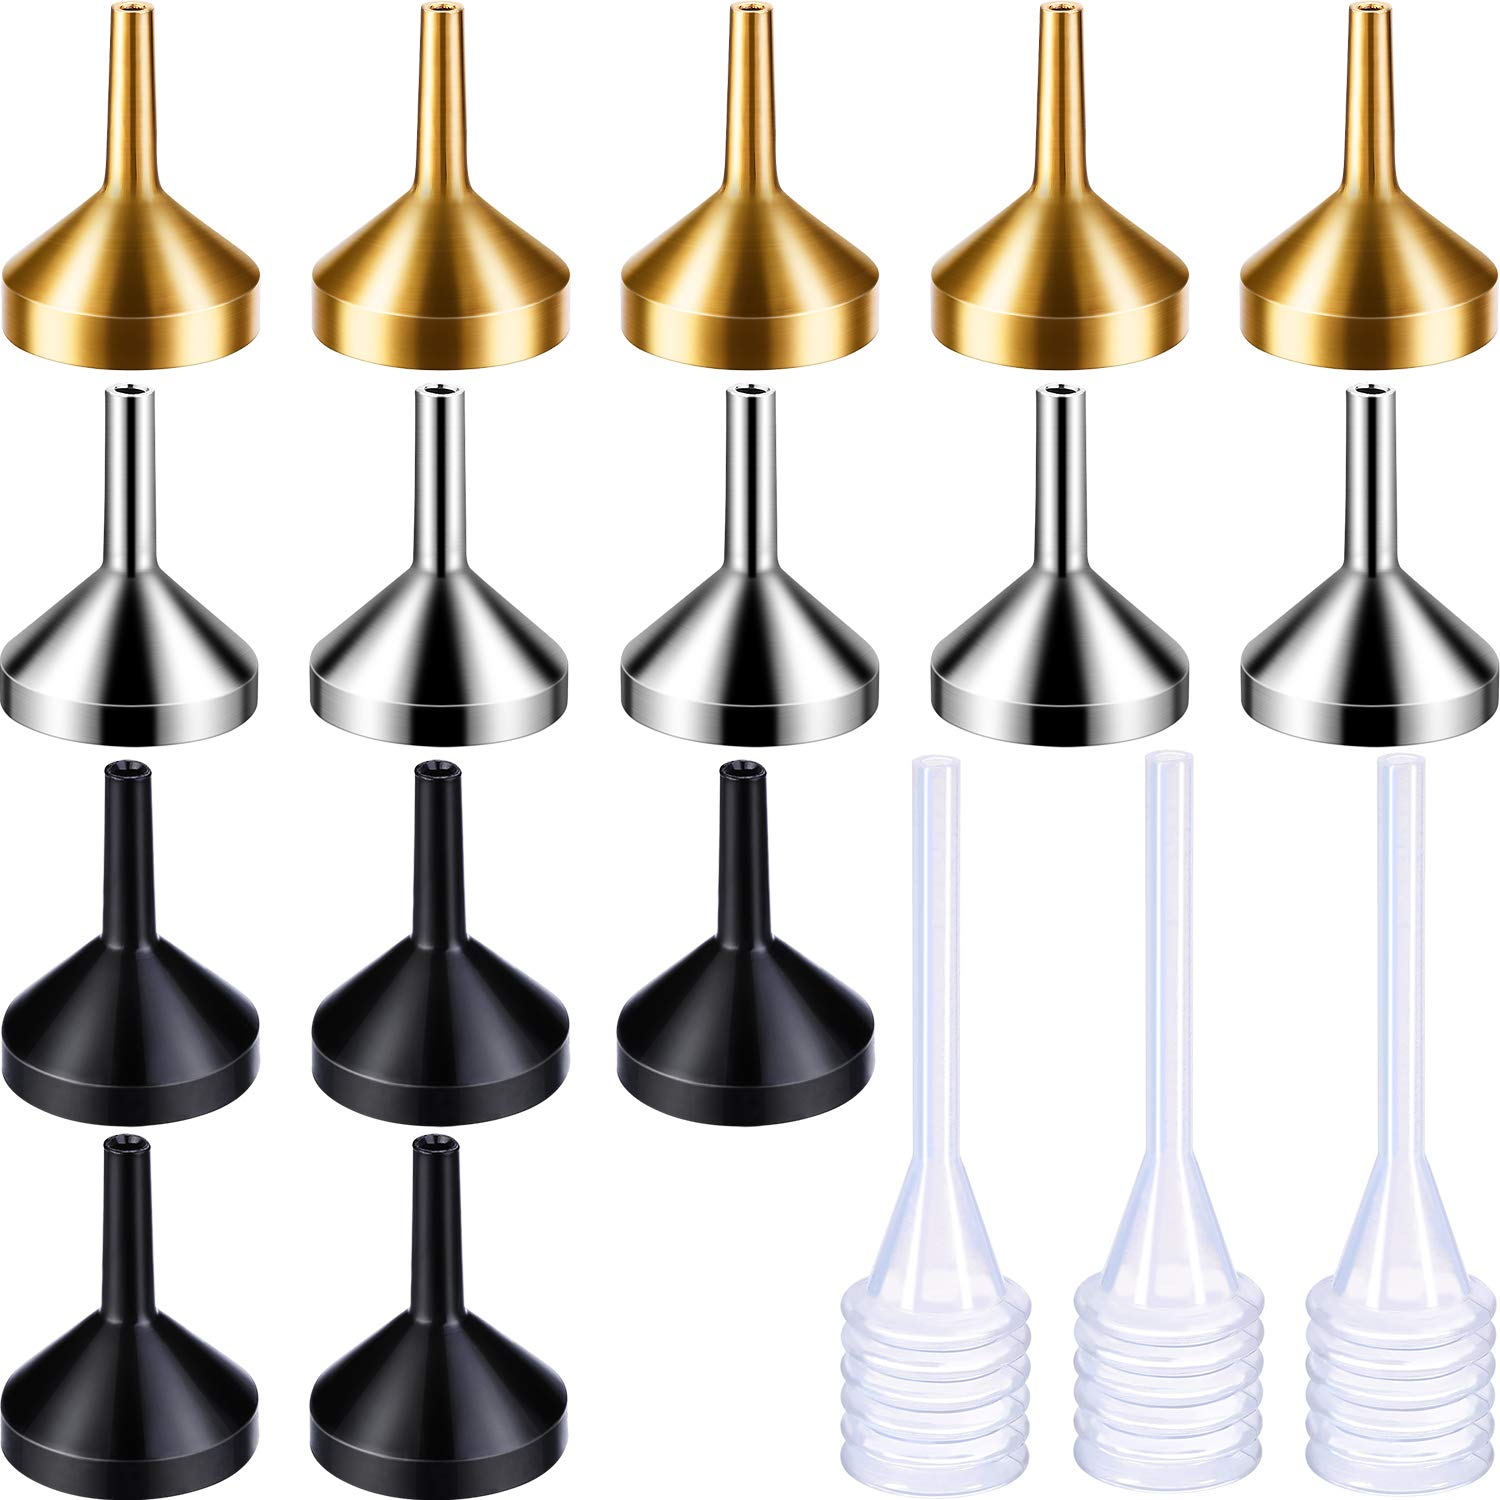 15 Pieces Metal Mini-Small Funnel Set with 3 Pack Mini Pipette for Essential Oils, Perfumes Spray Bottle, Perfume, Liquid (Gold, Silver, Black) Boao